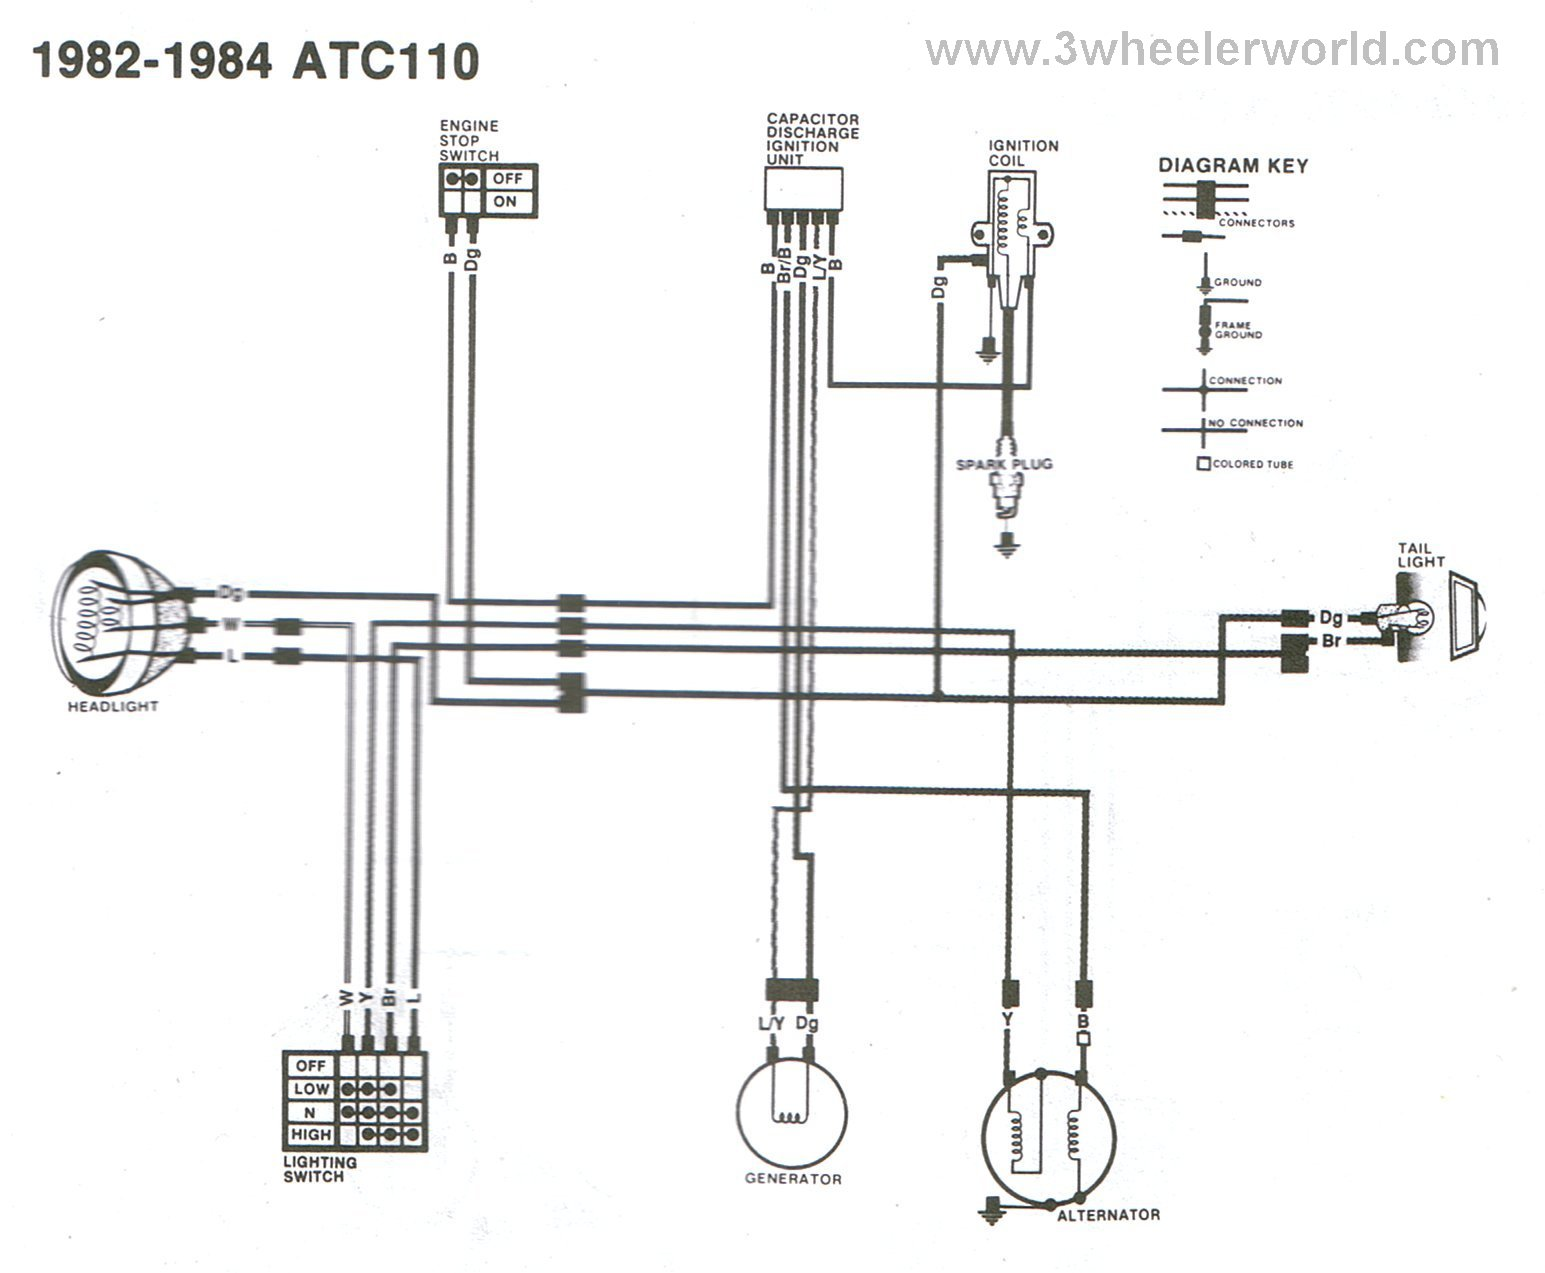 Honda 1989 Model 110 Wiring Diagram Diagrams Schema 3 Wheeler World Tech Help Atv Schematics